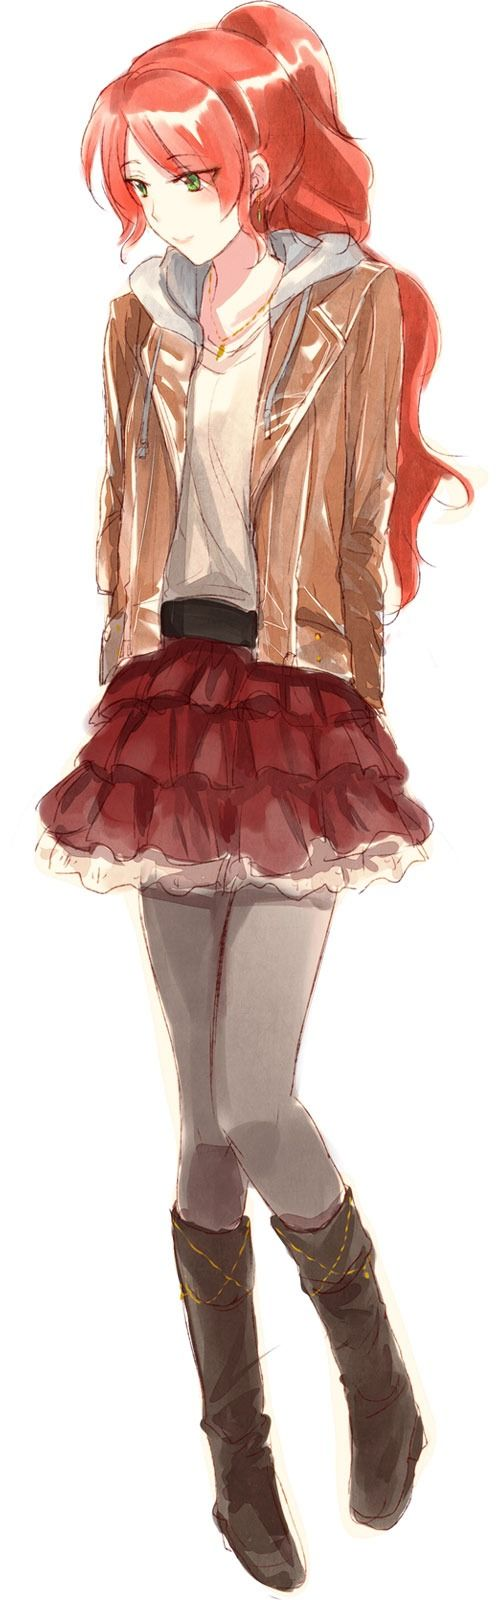 ☺ Pyrrha sits on a bench overlooking the Vale beach, she smiles as the autumn breeze rolls in, watching sunset                                                                                                                                                     More